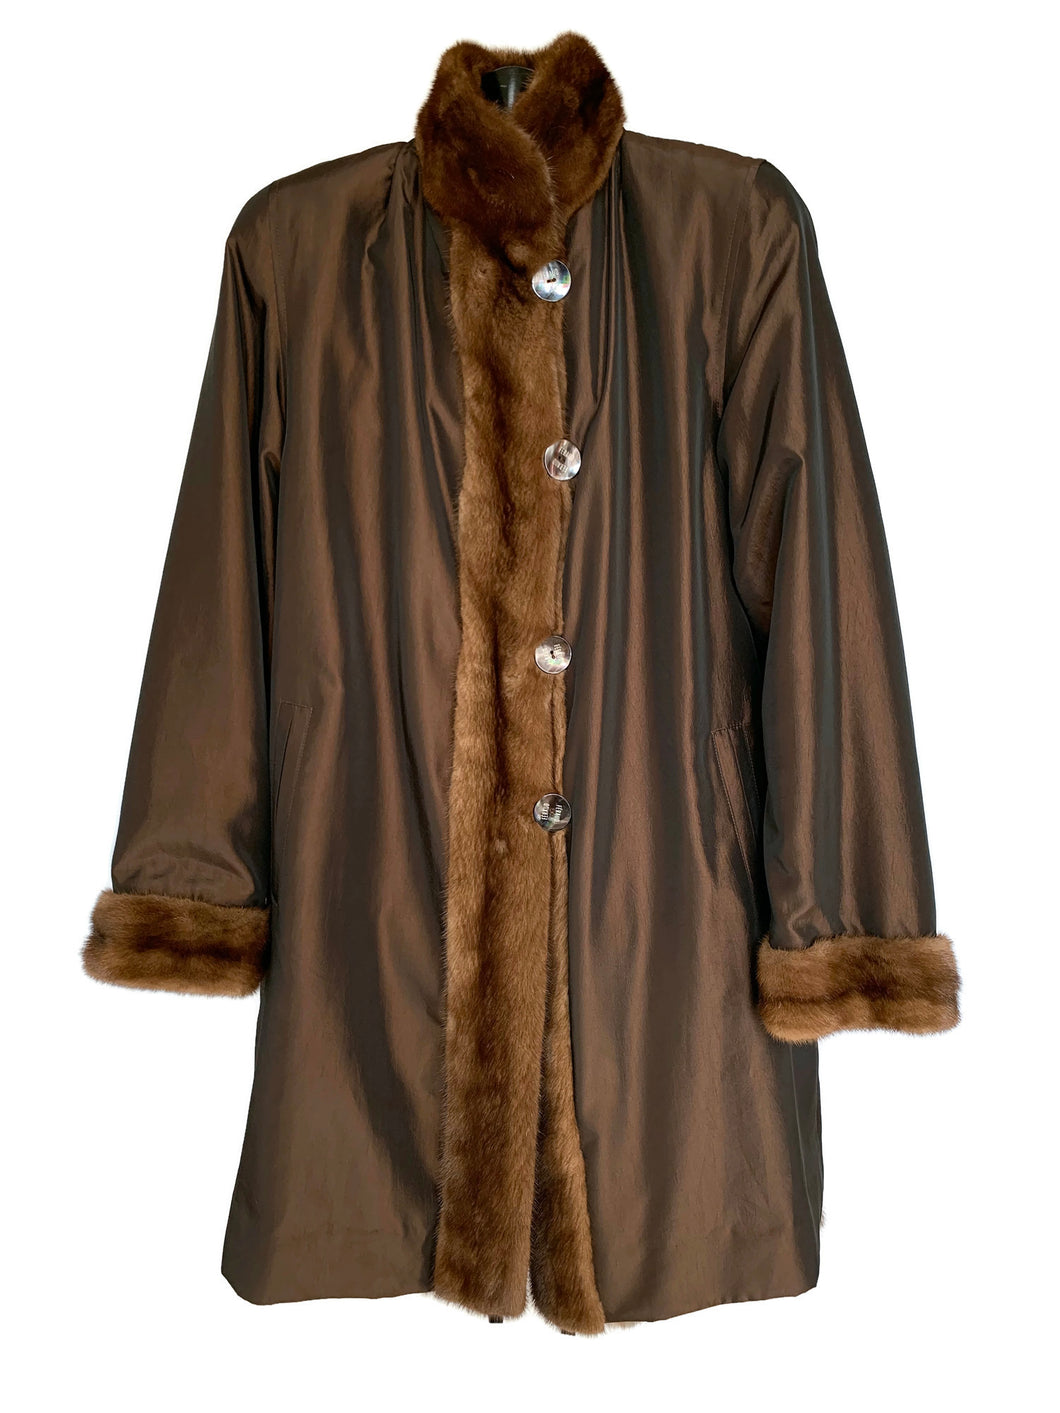 Brown Squirrel Coat Reversible Taffeata Lining W/ Mink Trim